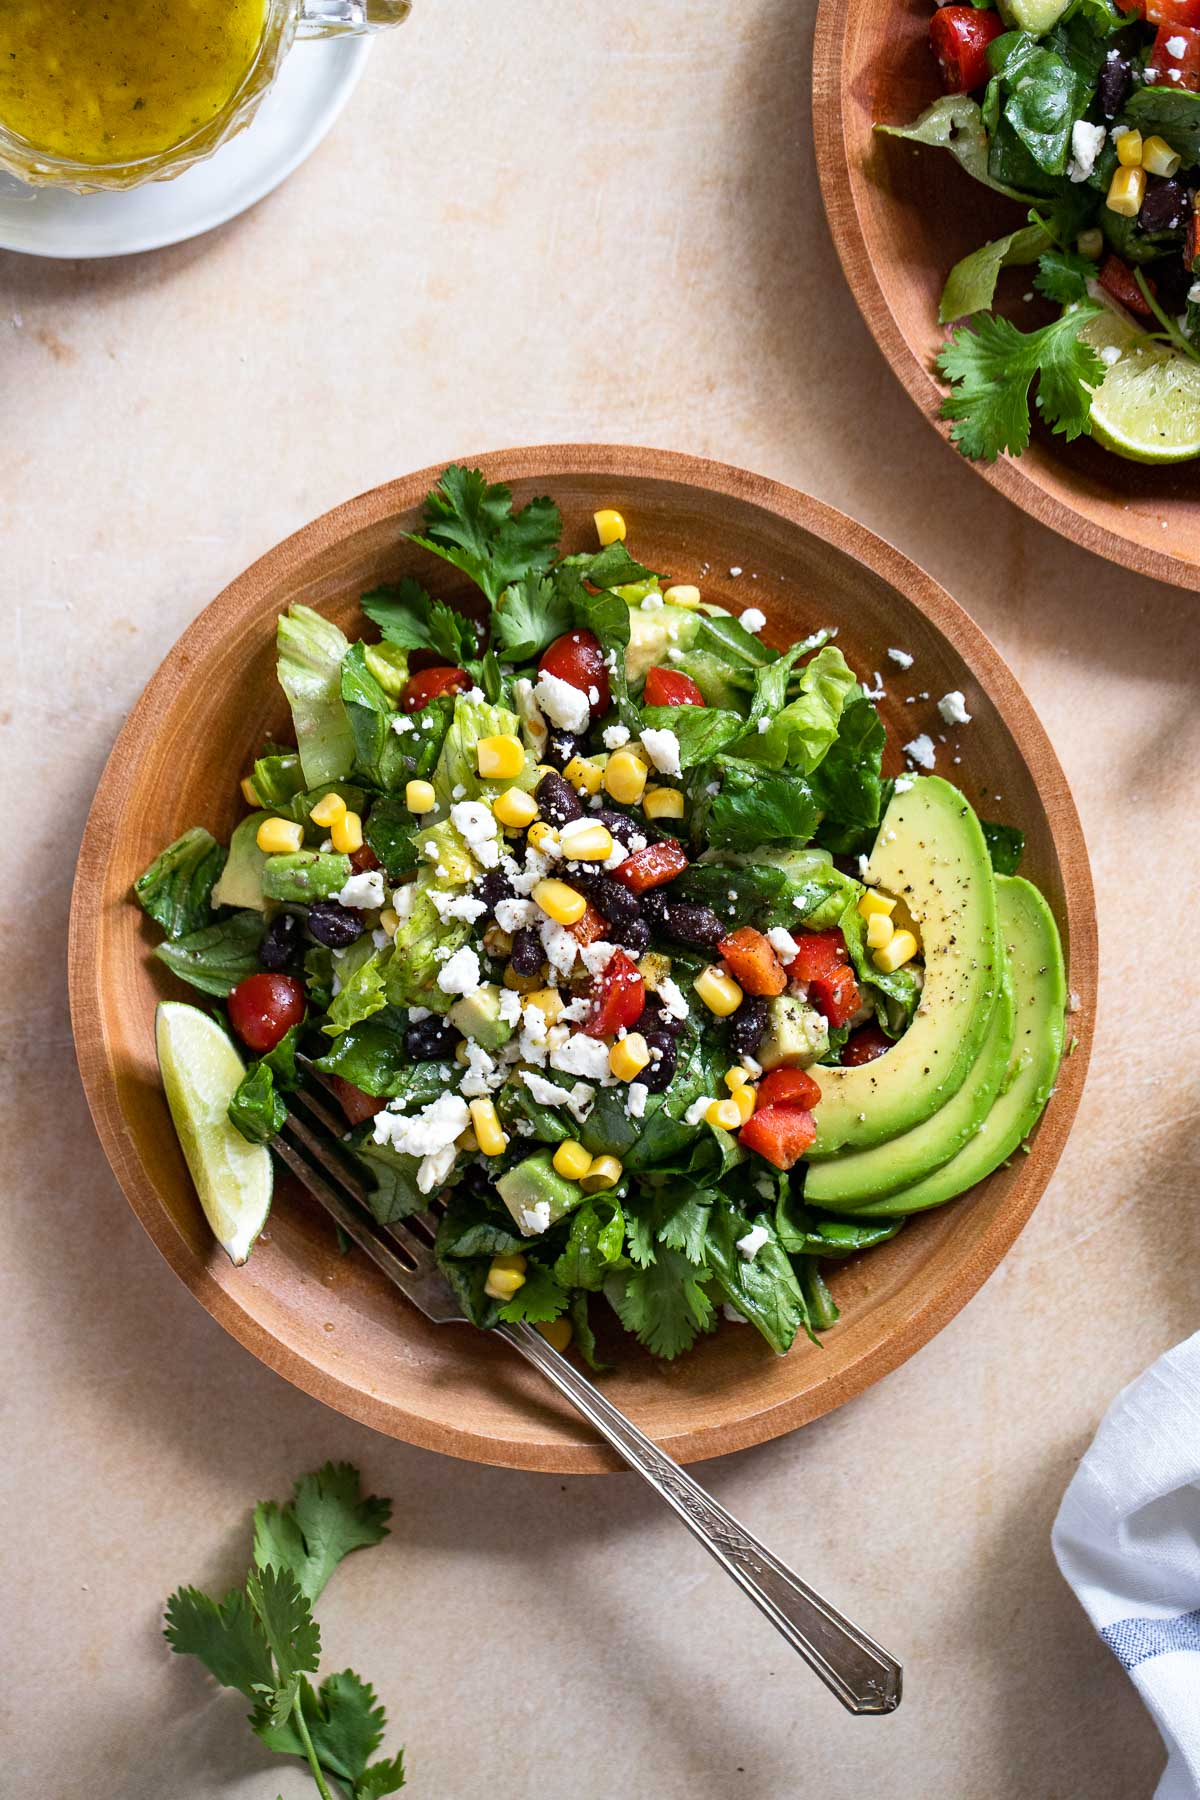 Southwest salad on wooden plate with fork.